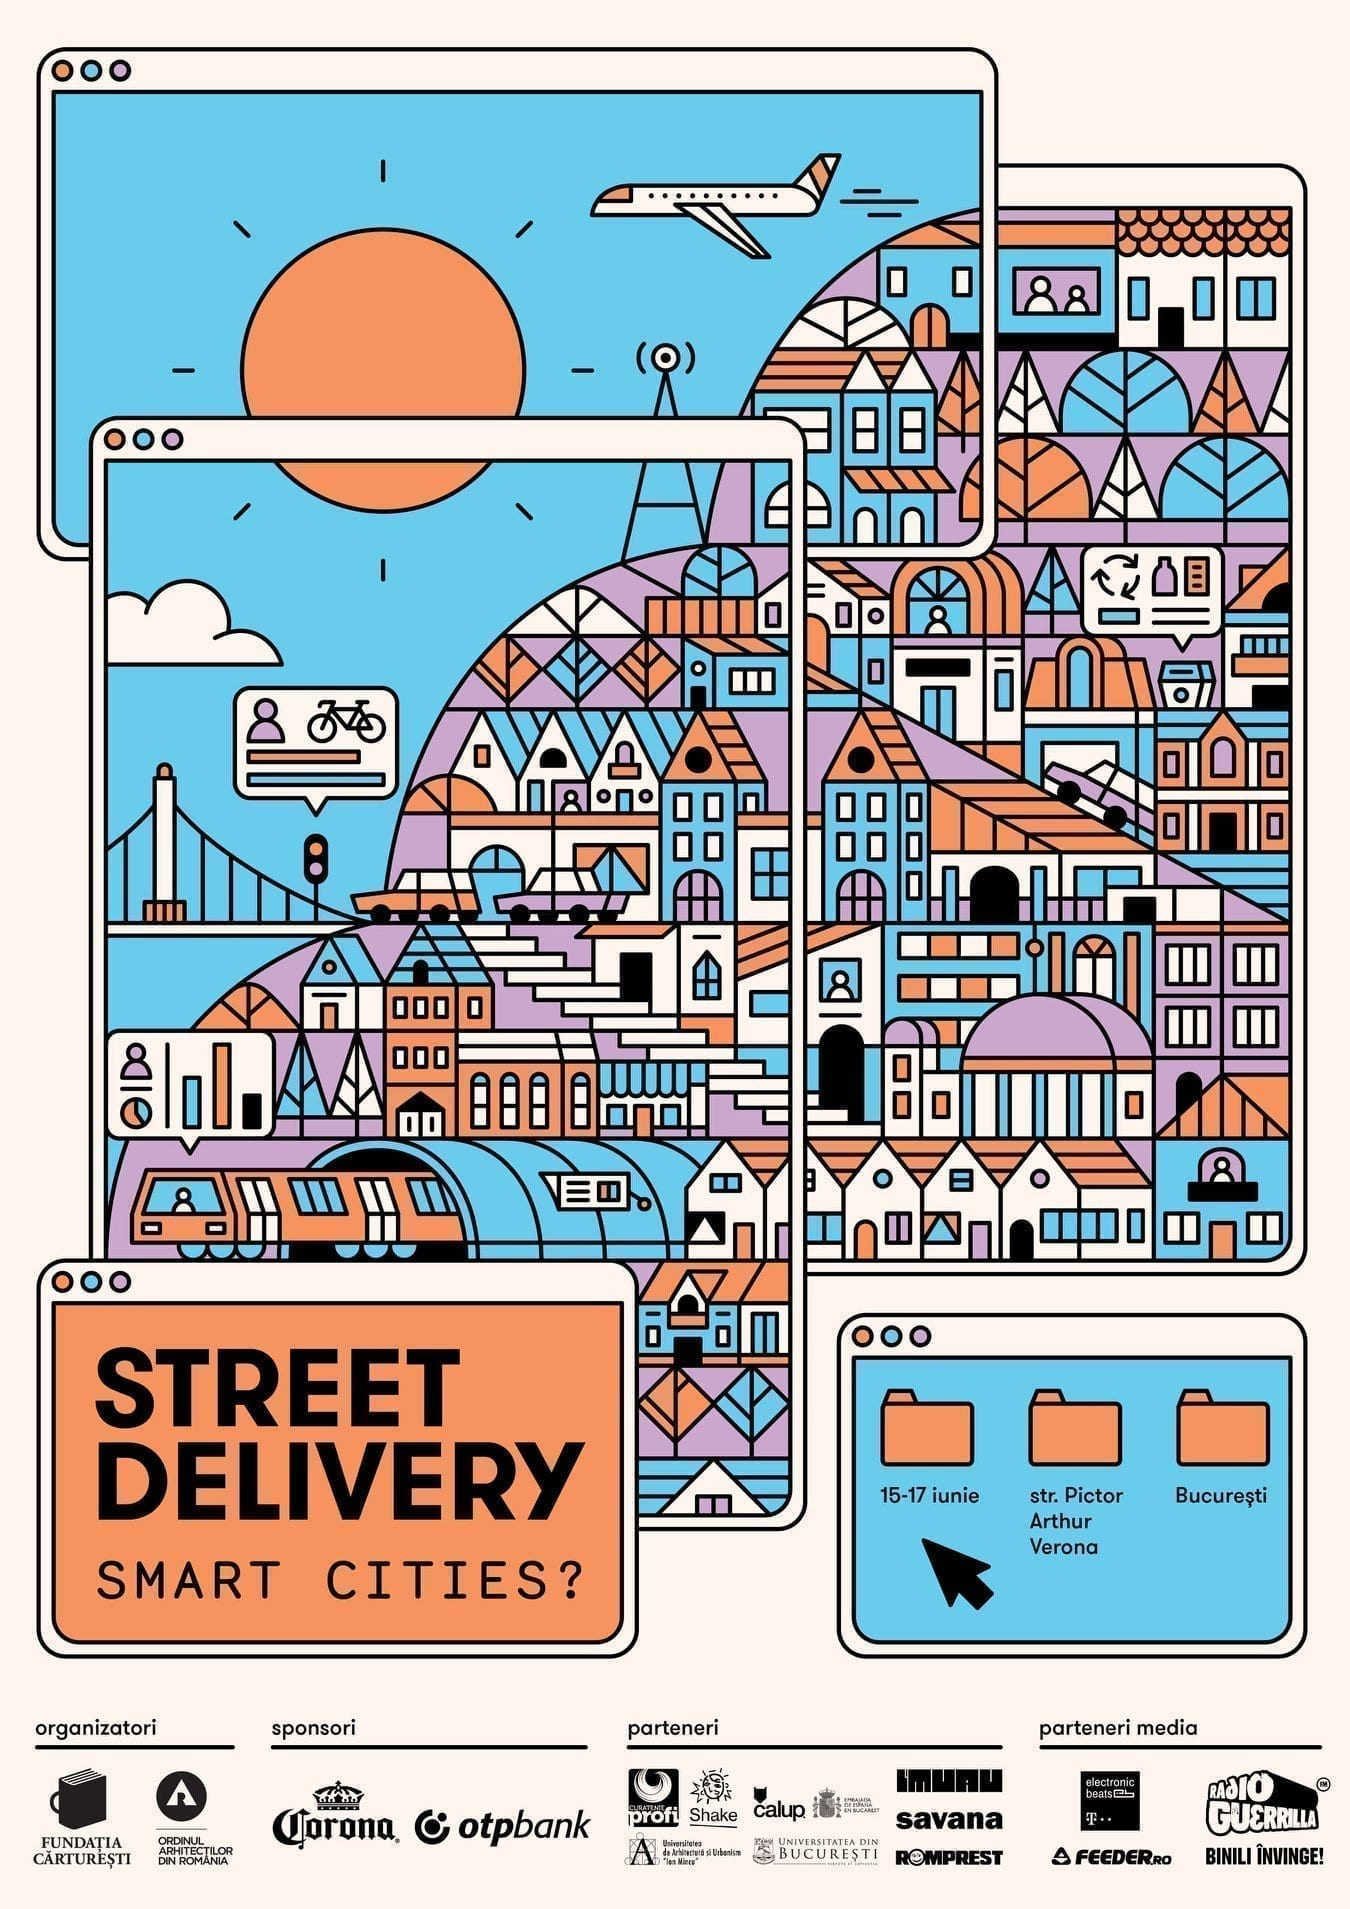 Street Delivery - Smart Cities?